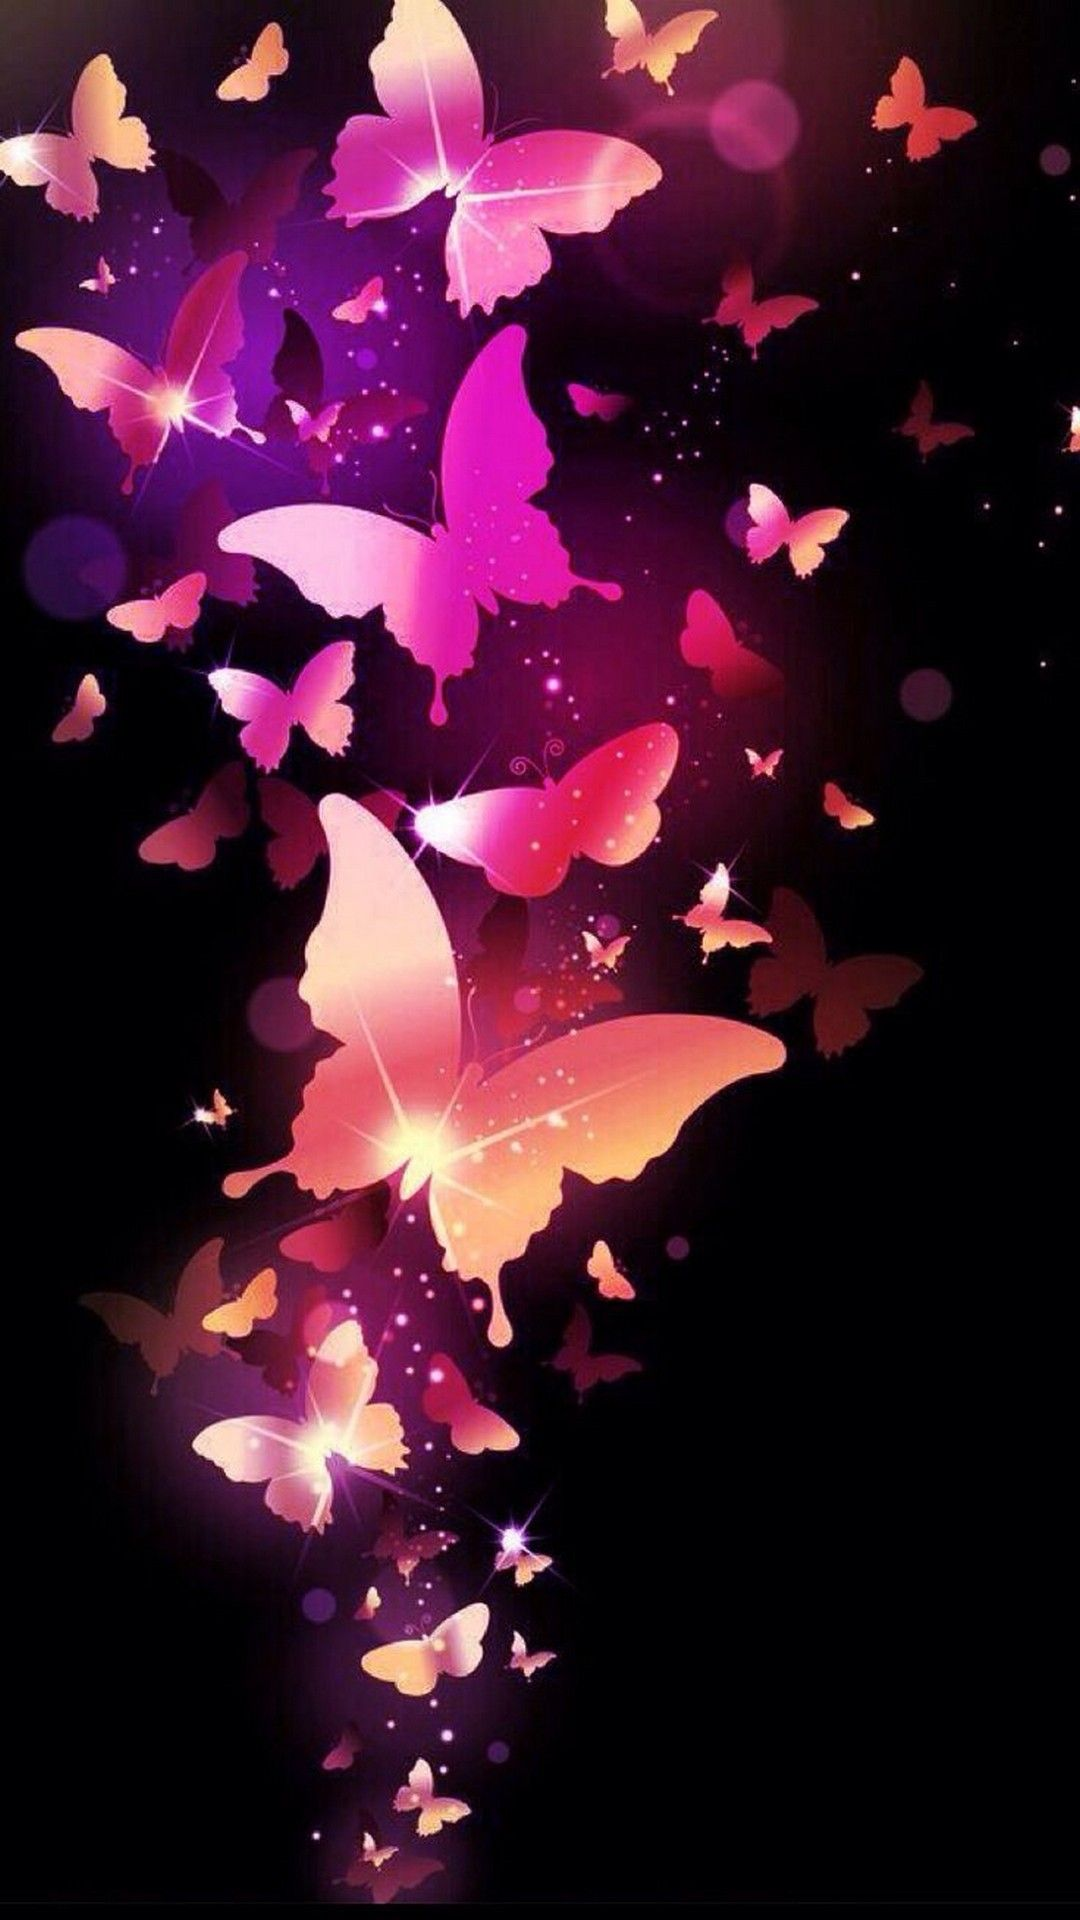 Wallpapers Phone Pink Butterfly Best Mobile Wallpaper Neon Wallpaper Butterfly Wallpaper Butterfly Wallpaper Backgrounds